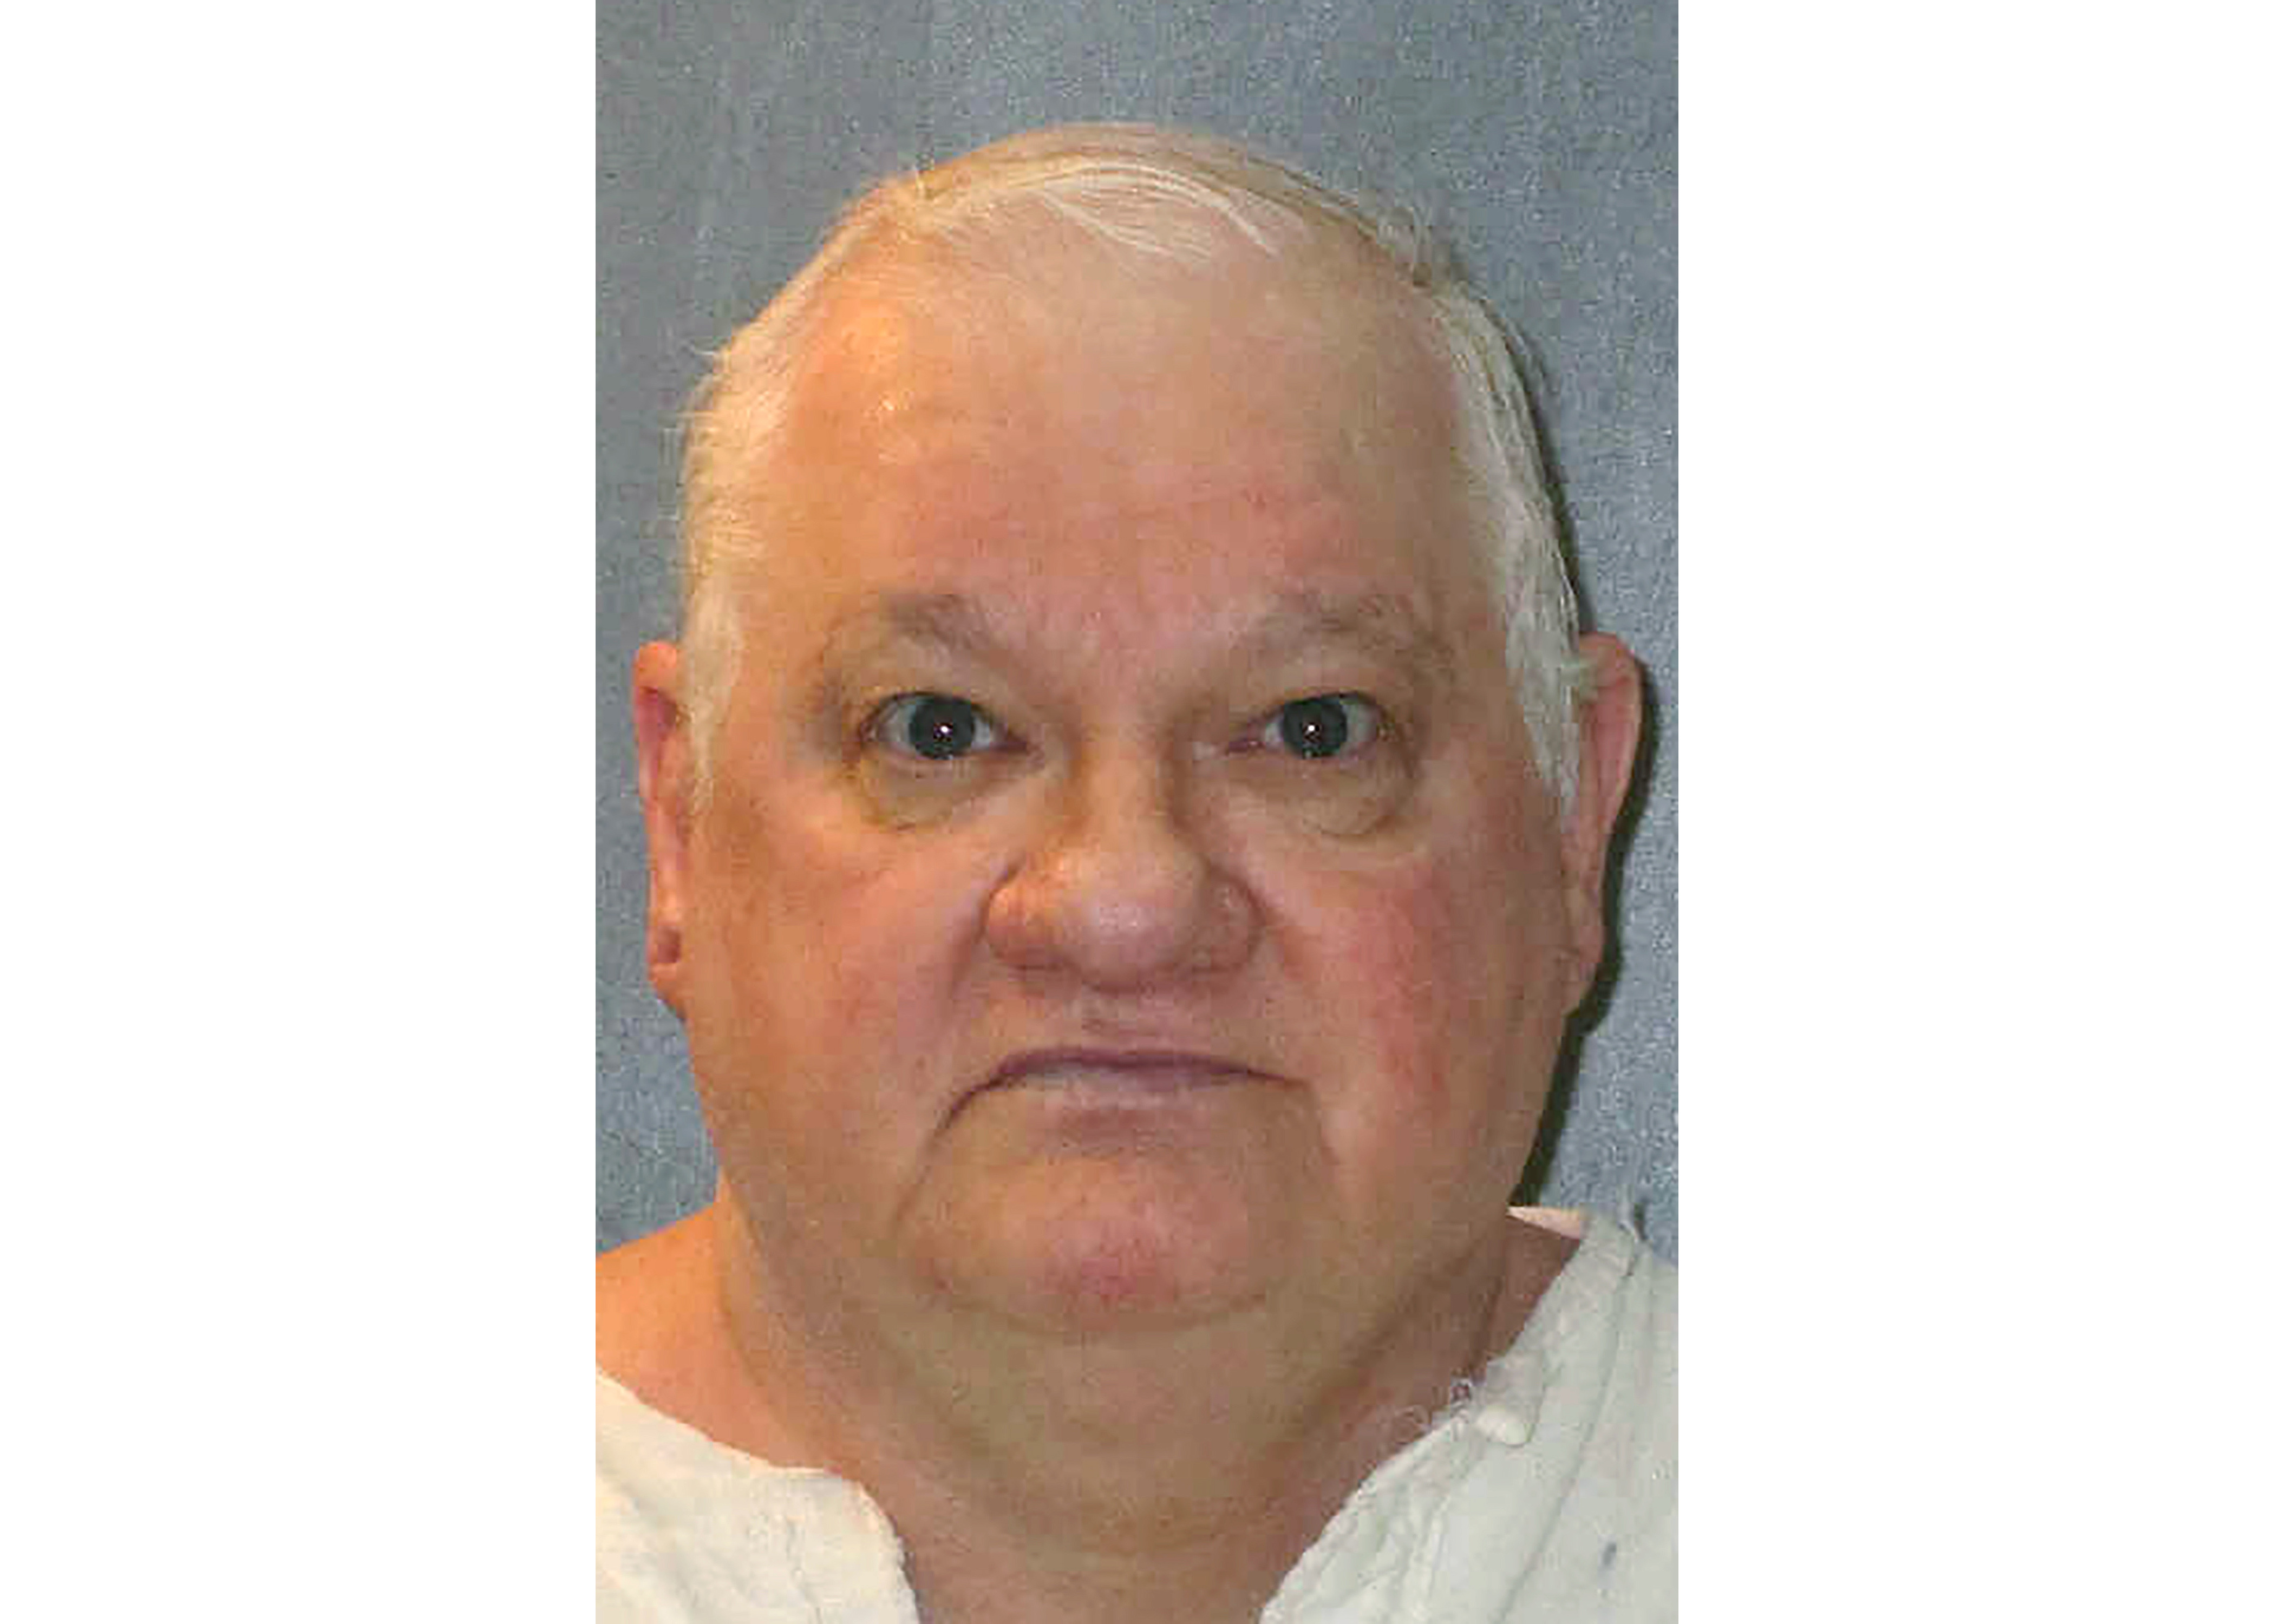 Texas inmate executed for killing 2 women in 2003